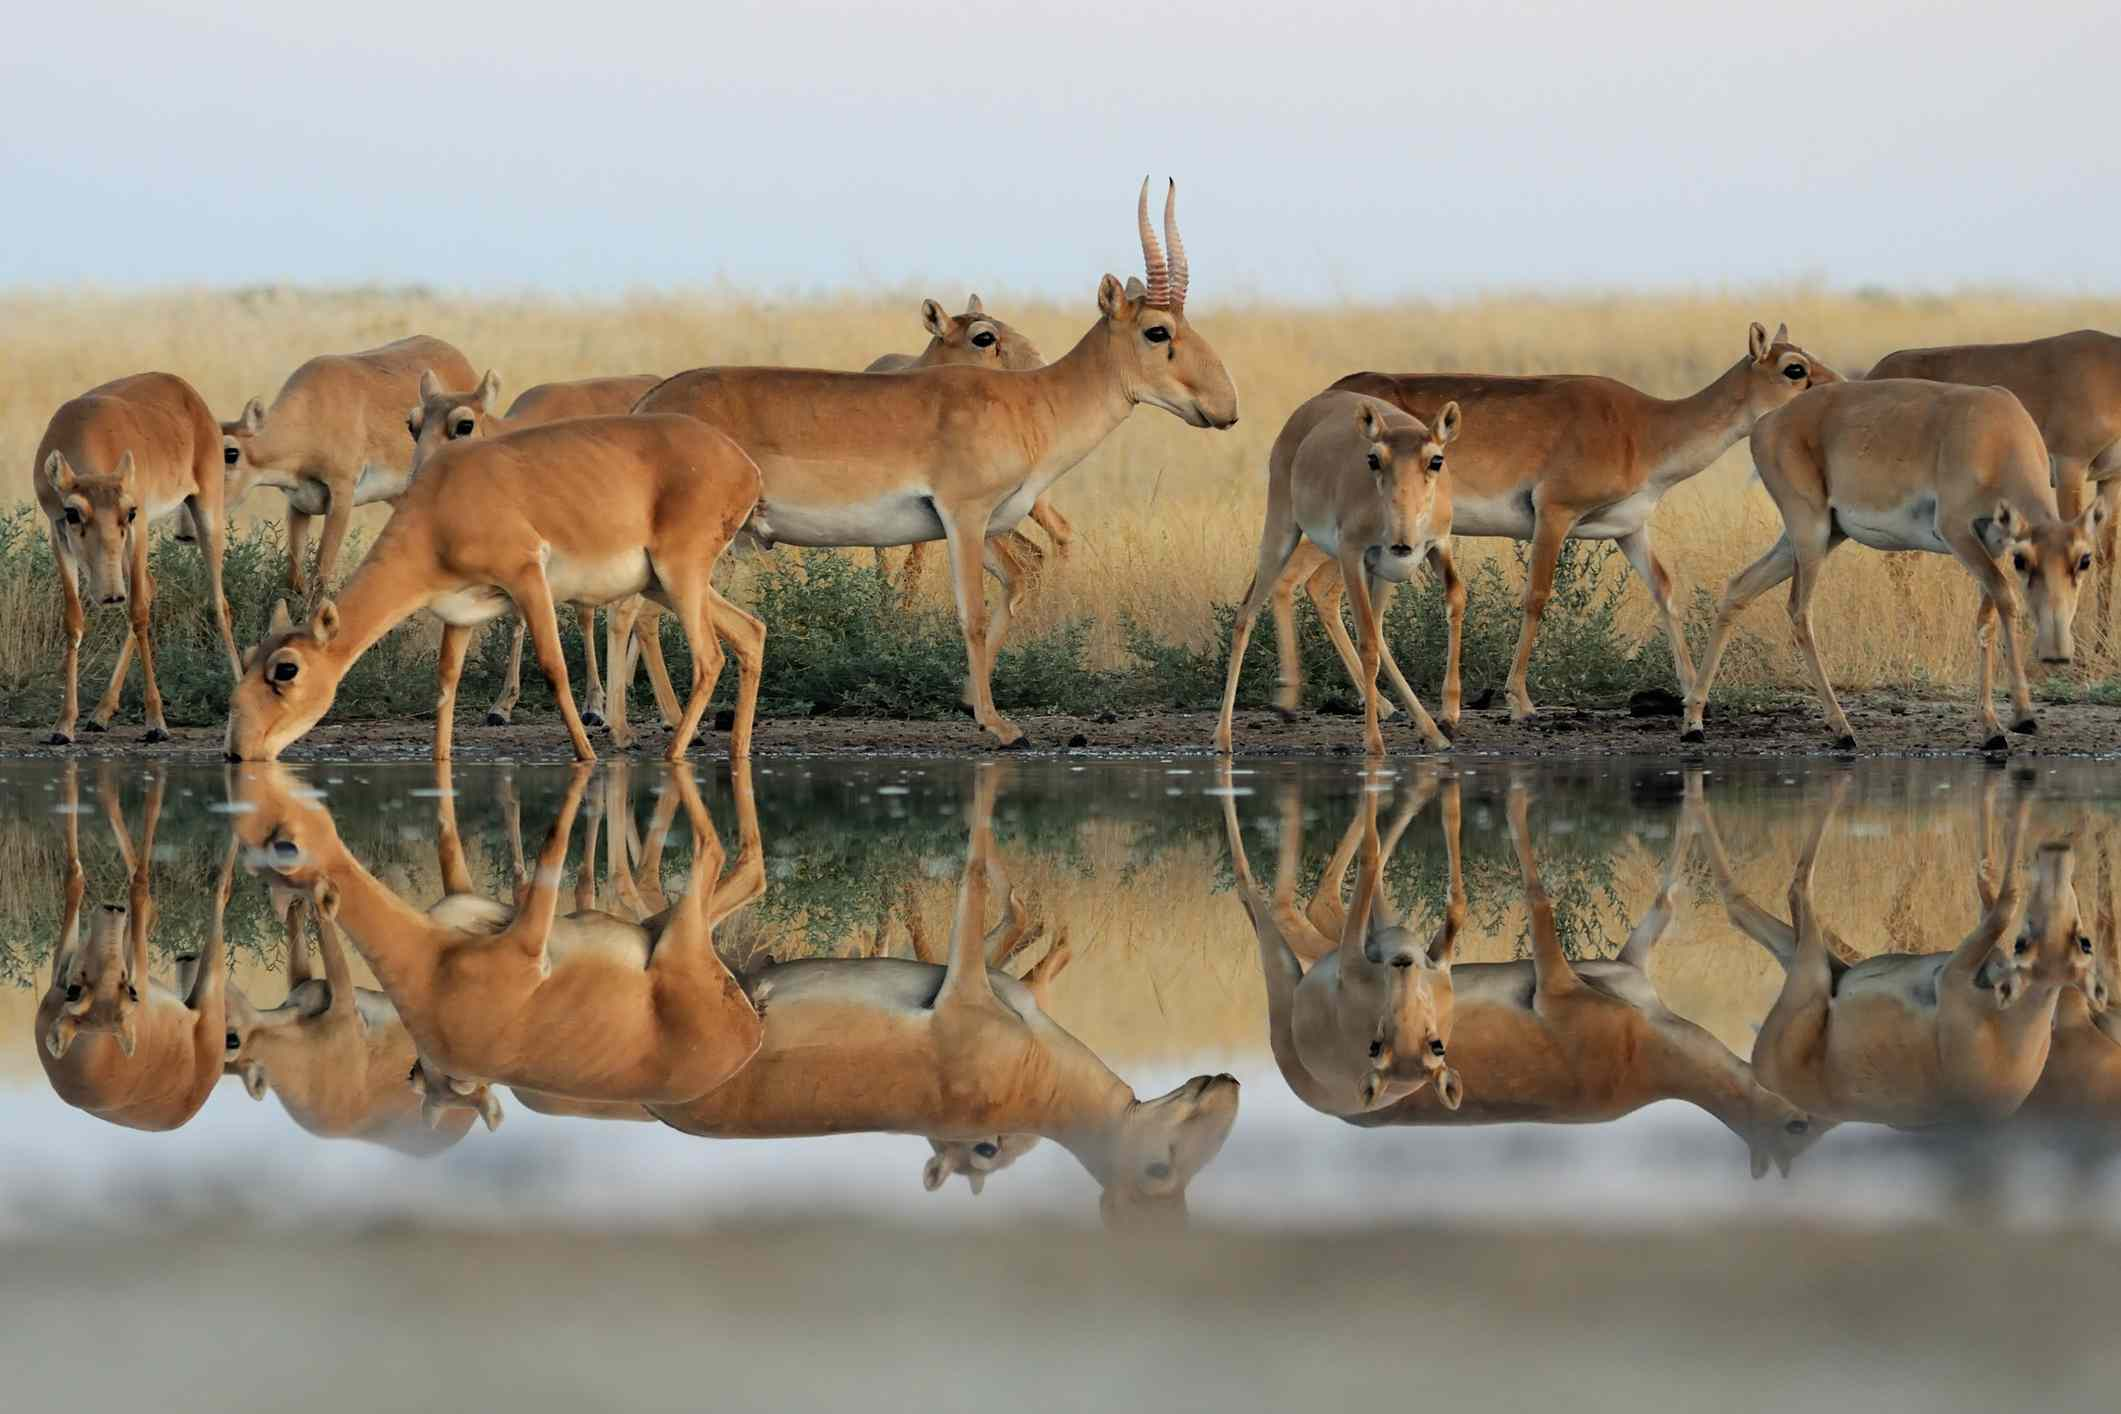 Wild Saiga antelopes in steppe near watering hole